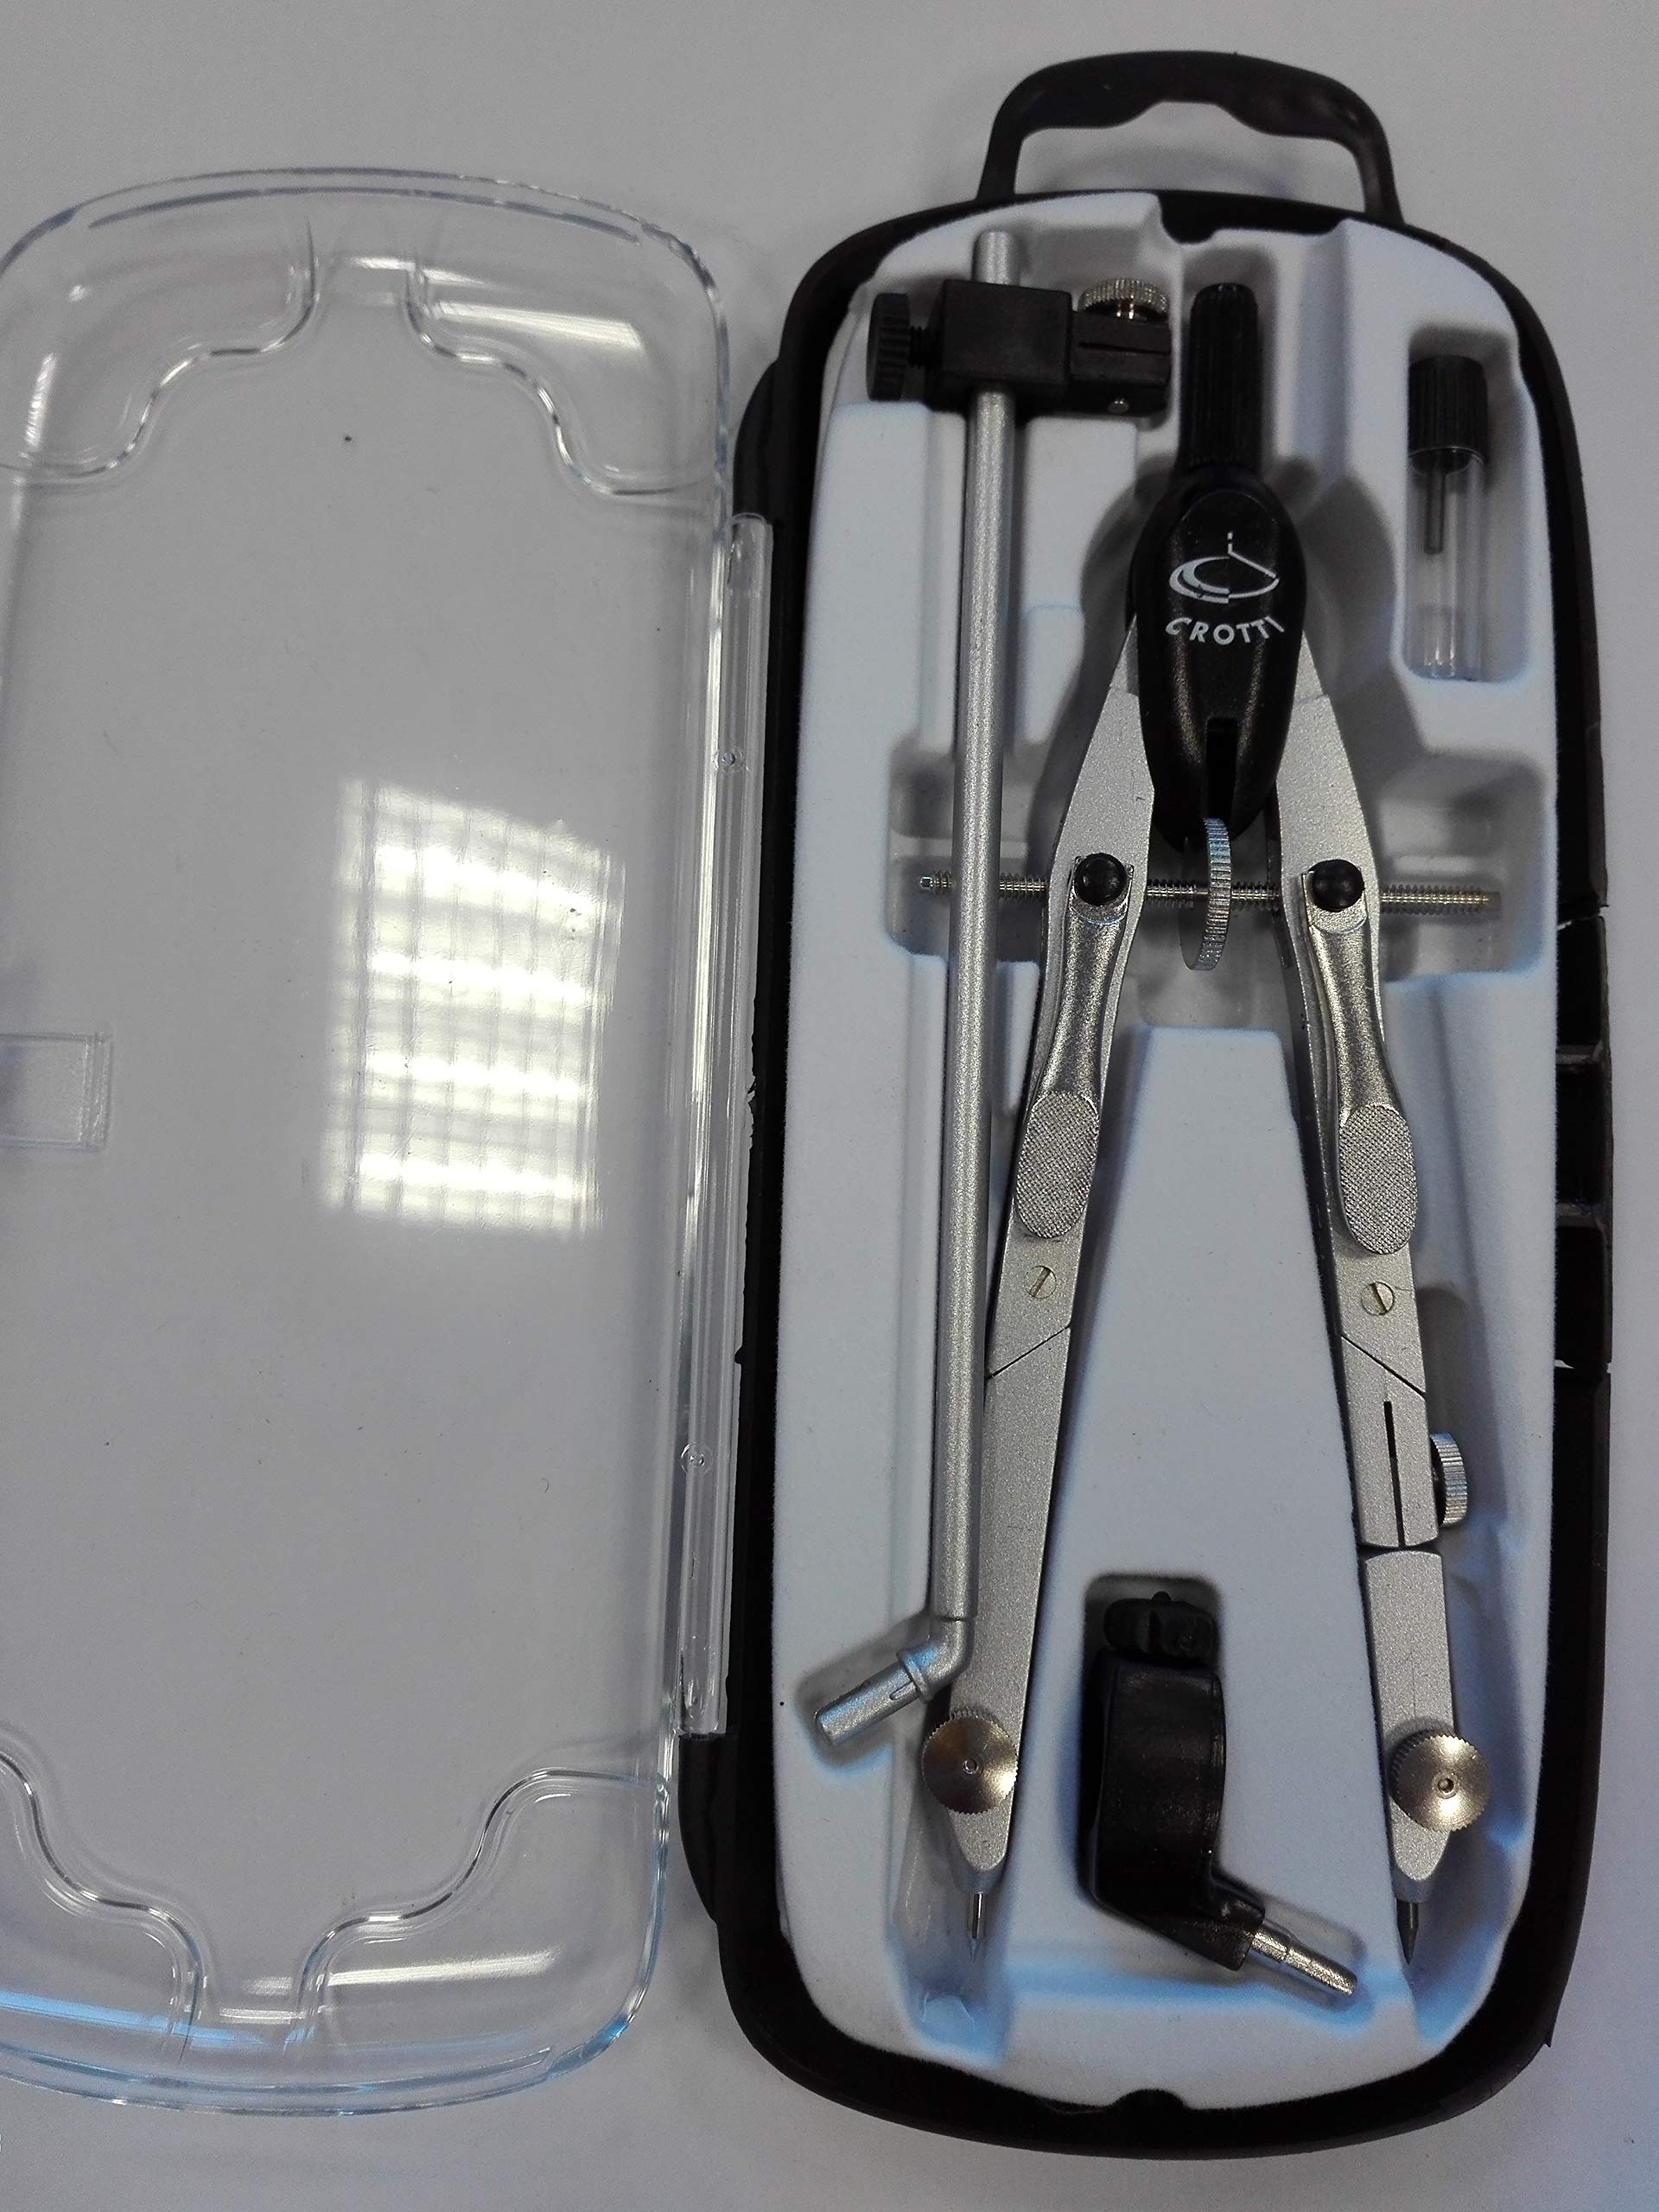 Metal balaustrone Double Joint with Quick Adjustment by Means of Metal levers - Silver with Black Head.